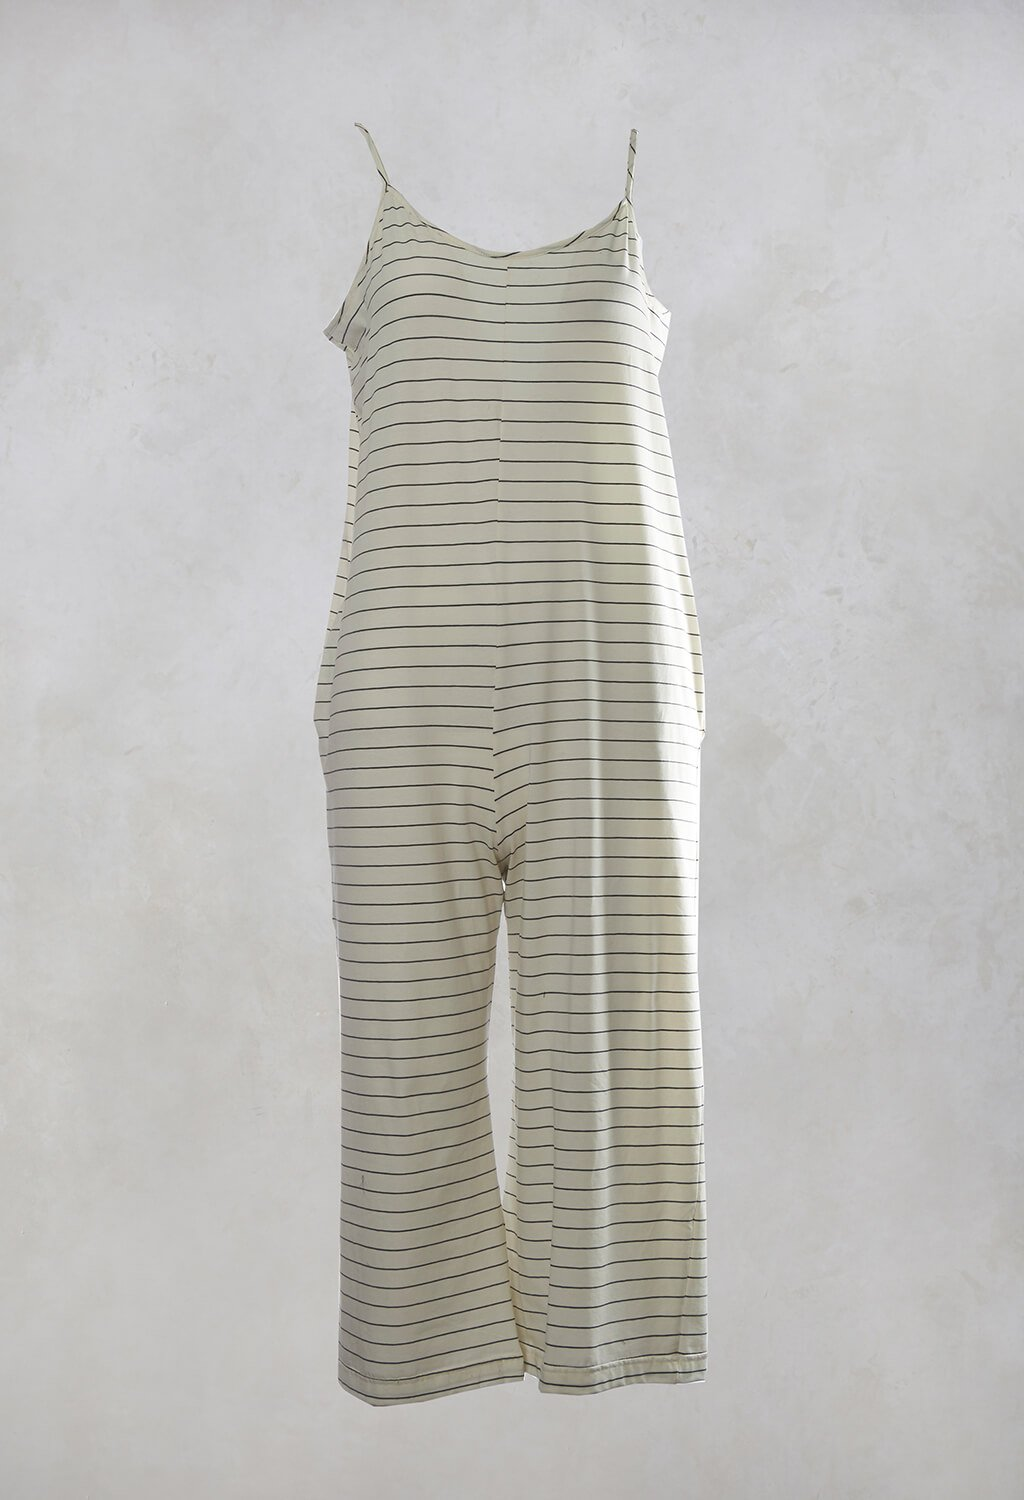 Sole Rigato Jumpsuit in Lava / Latte